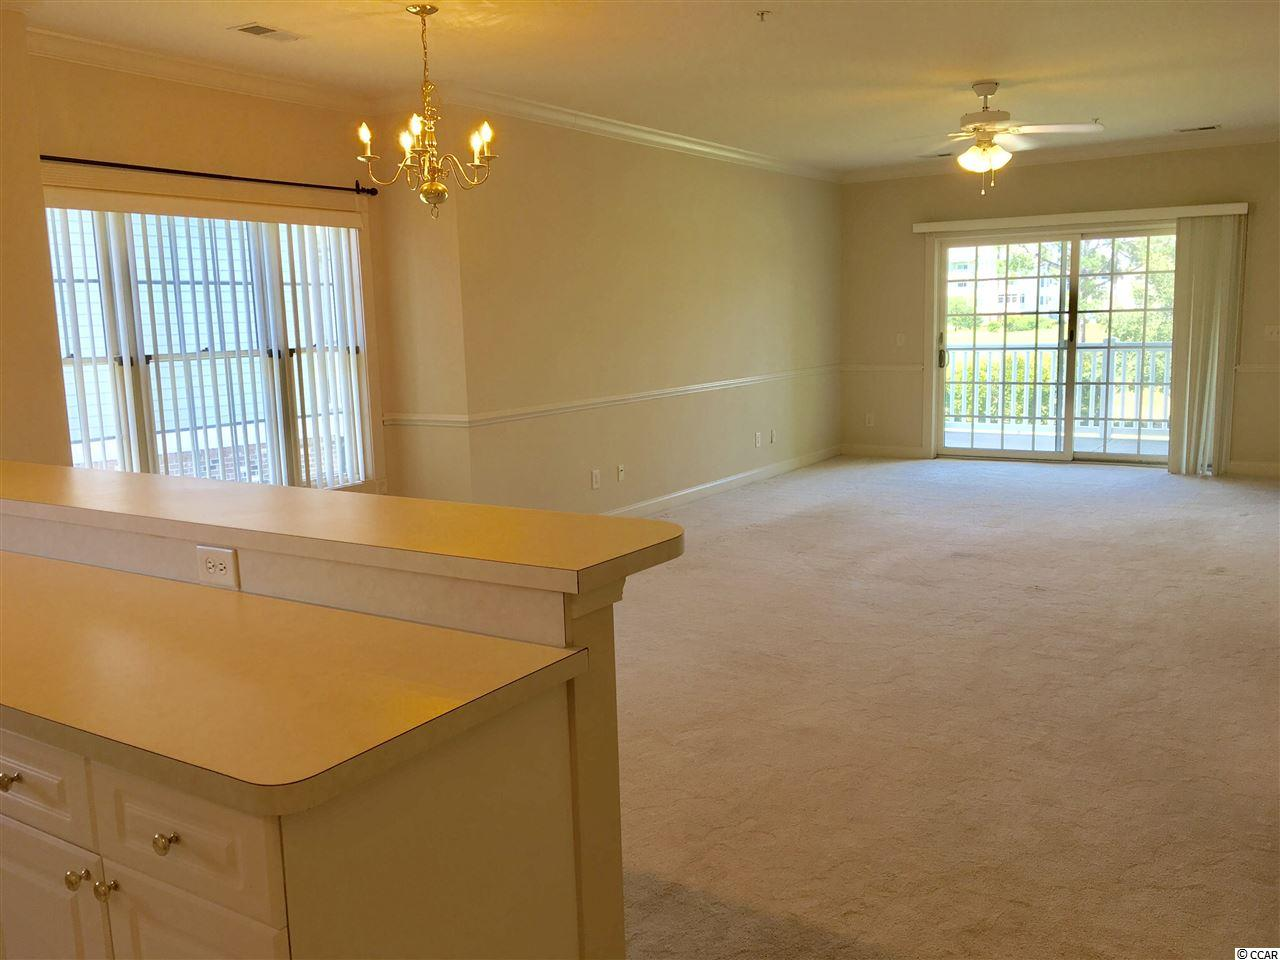 3 bedroom  MAGNOLIA POINTE condo for sale